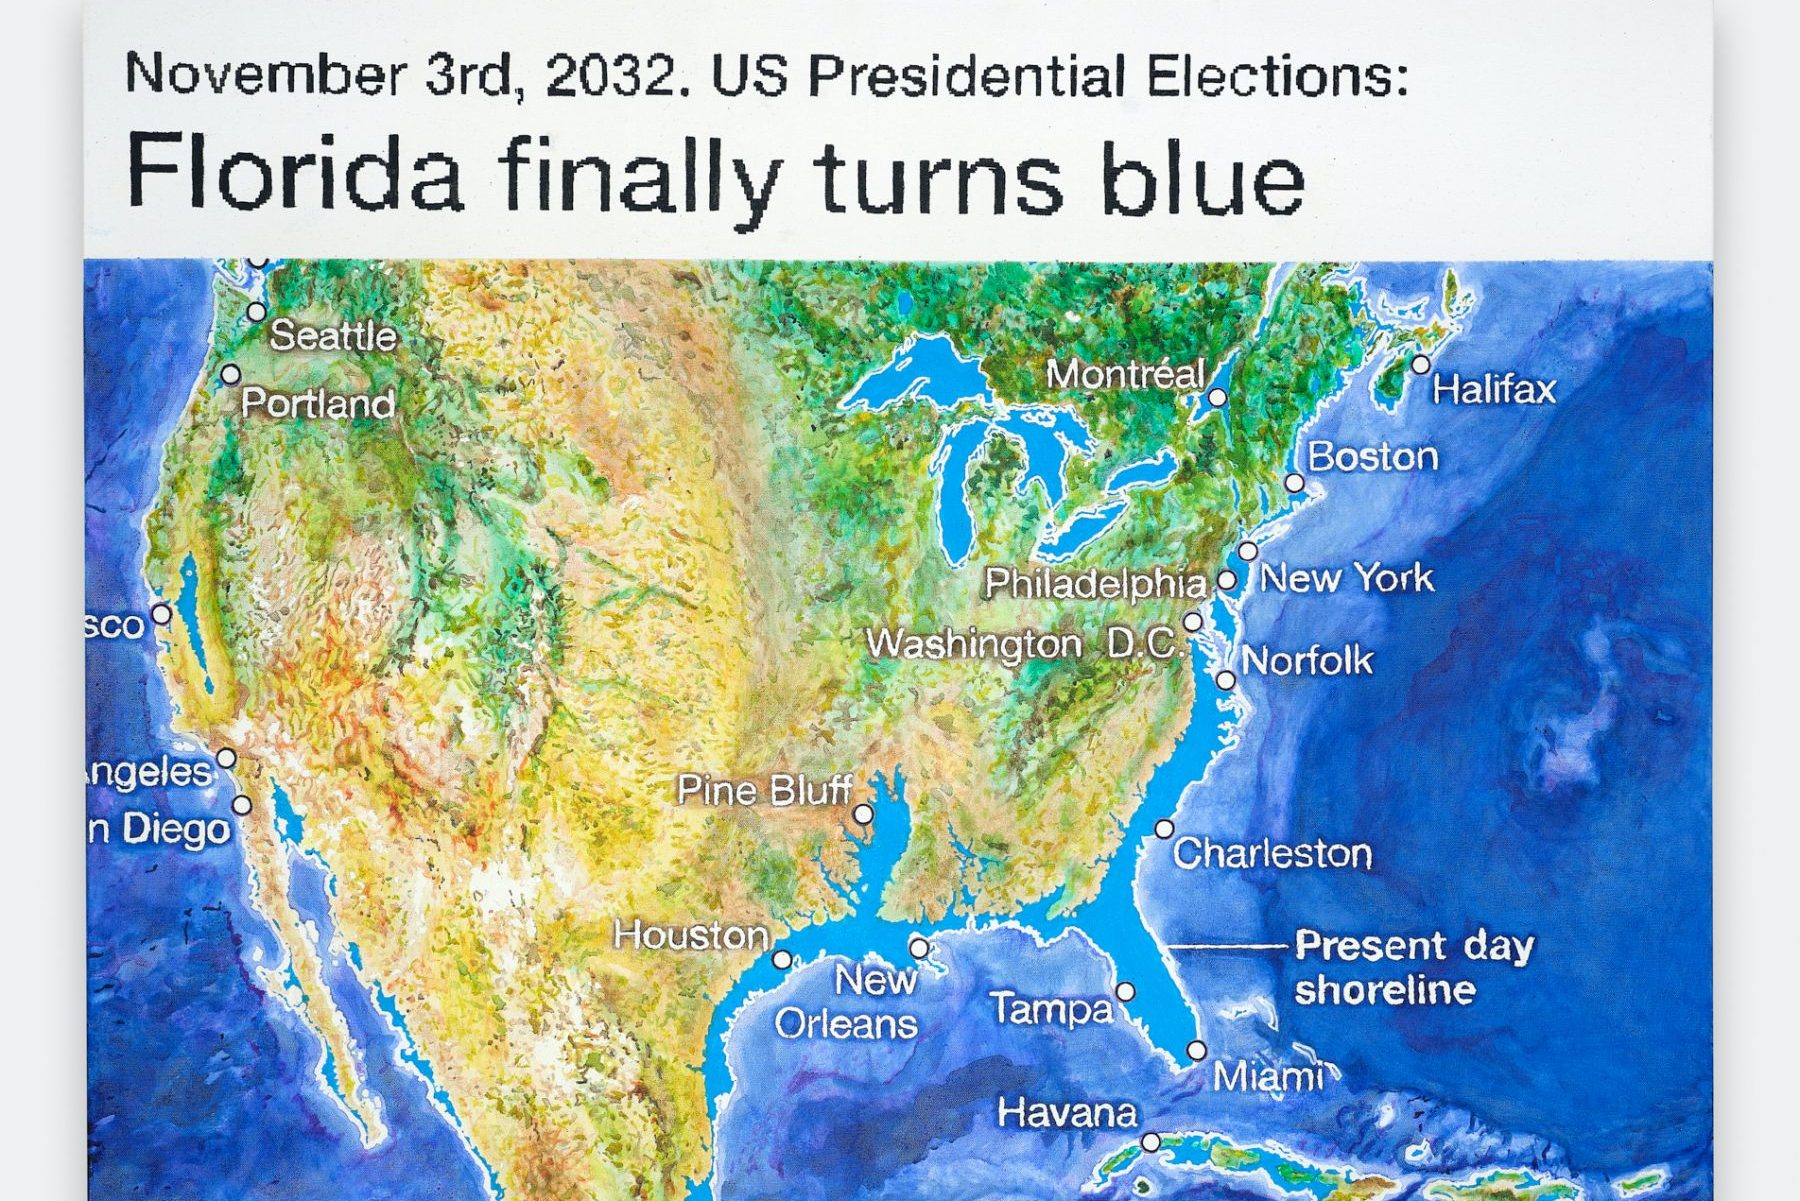 "a photorealistic painting resembling a digitally computed, topographical image of the United States, with the text above it reading ""November 3rd, 2032. US Presidential Elections: Florida finally turns blue,"" in reference to states along the southeastern coastline (i.e. Texas, Louisiana, Mississippi, Alabama, Georgie, Florida, and the Carolinas) that are visibly underwater."